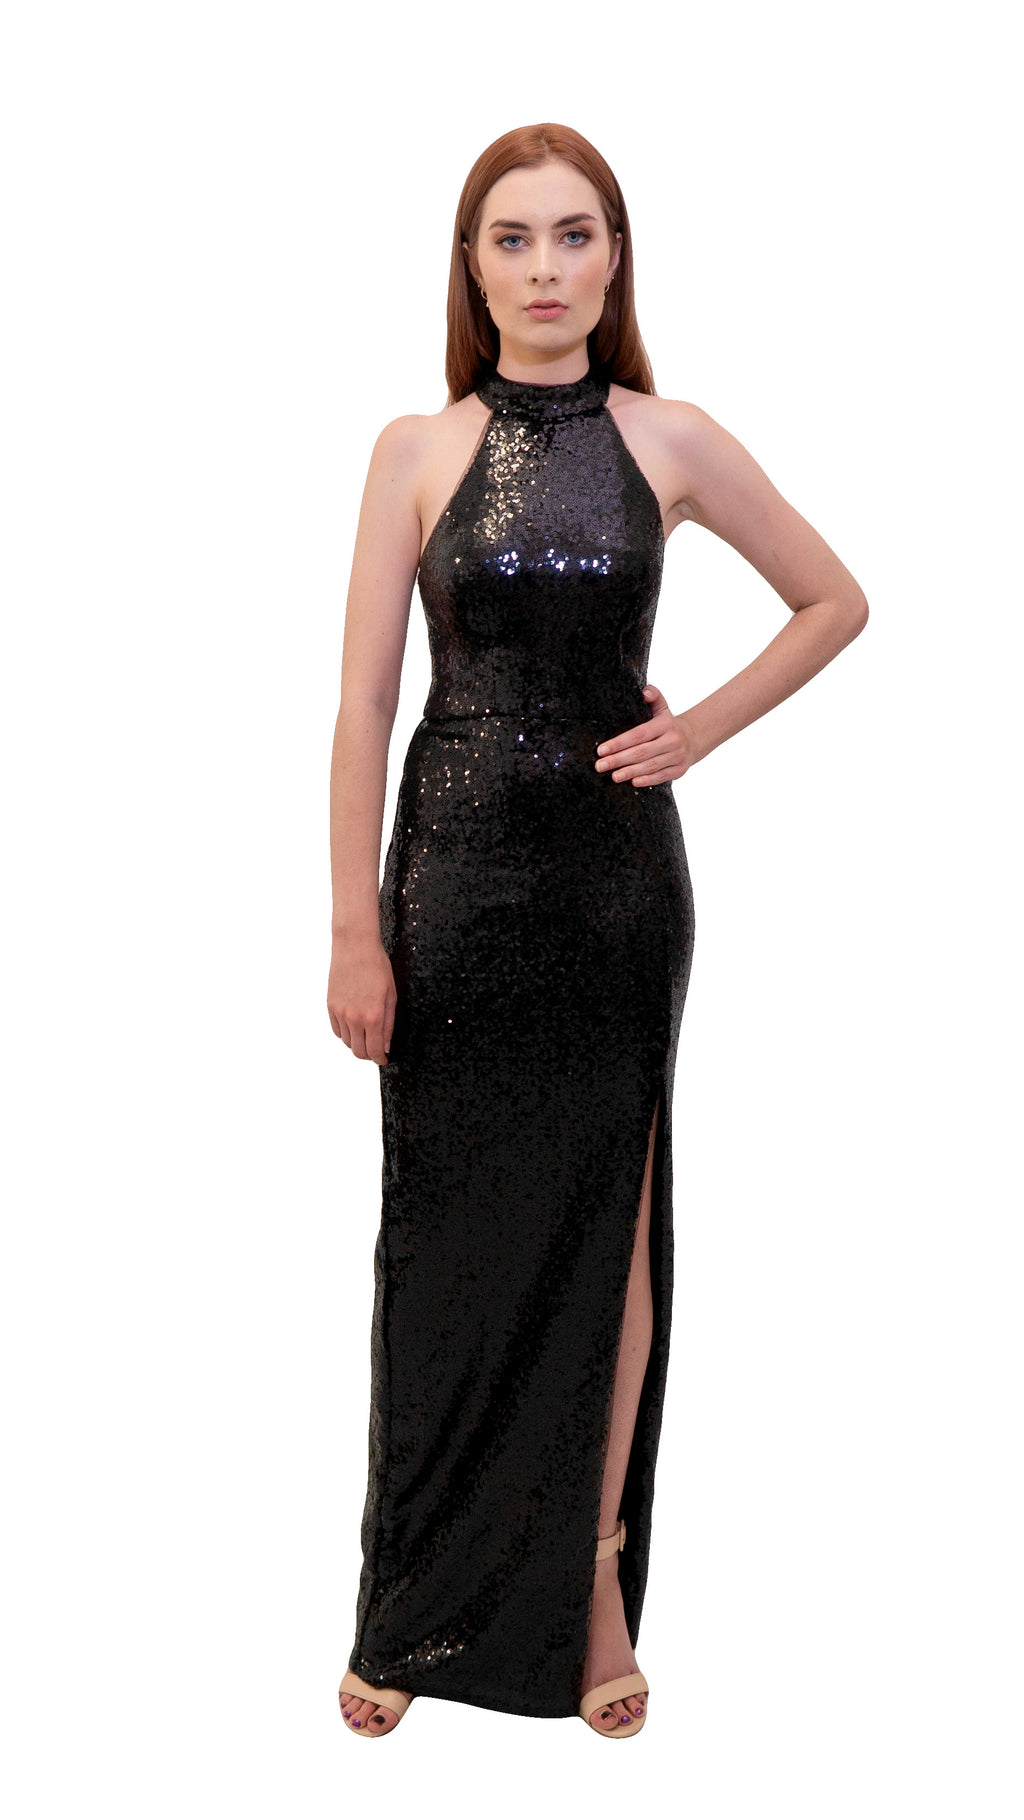 Bariano Heather high neck sequin dress Black